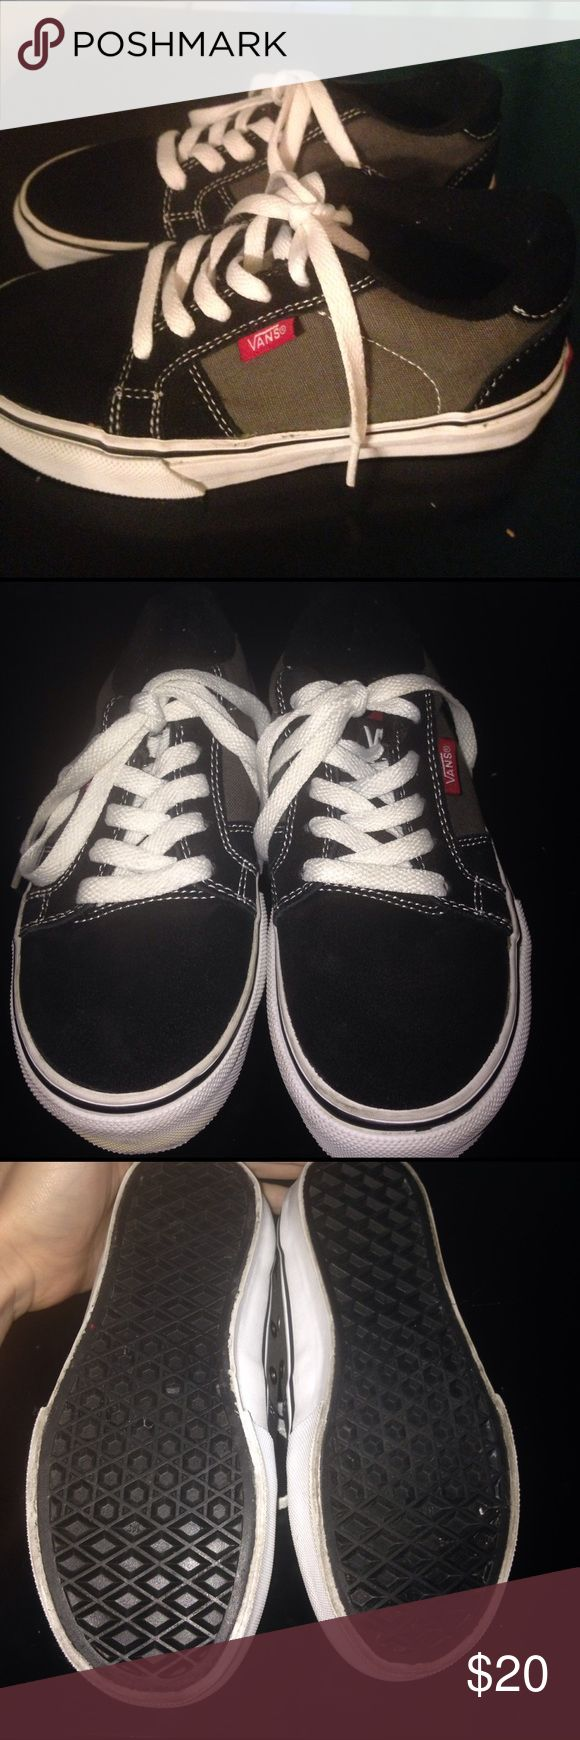 Boys vans shoes In great condition. My kiddo only wore them maybe 3 times. Close up photo shows a little discoloration on the front of sole. Little bit of scuffs on the front toe area. Vans Shoes